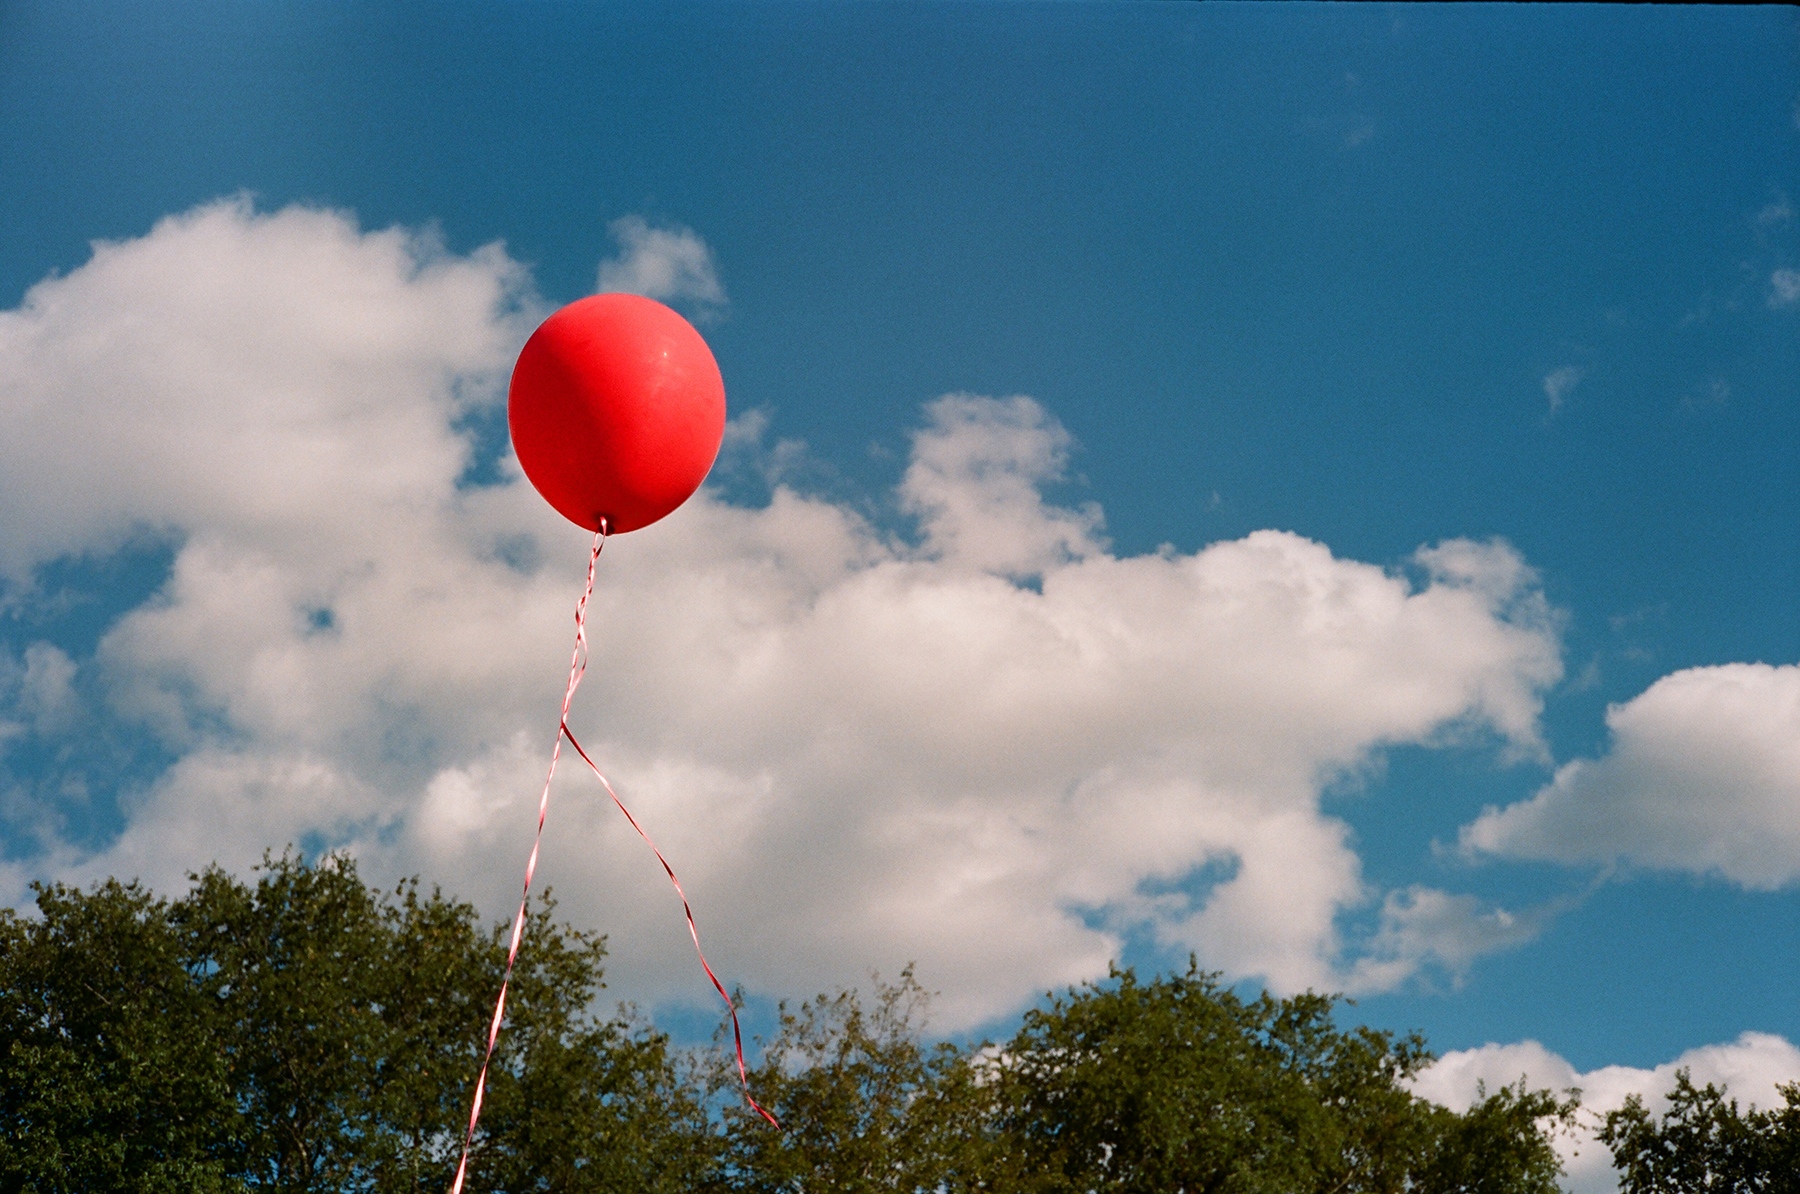 Red Balloon Blue Sky | Yashica Electro 35GS | Portra 160 | Ian Ross